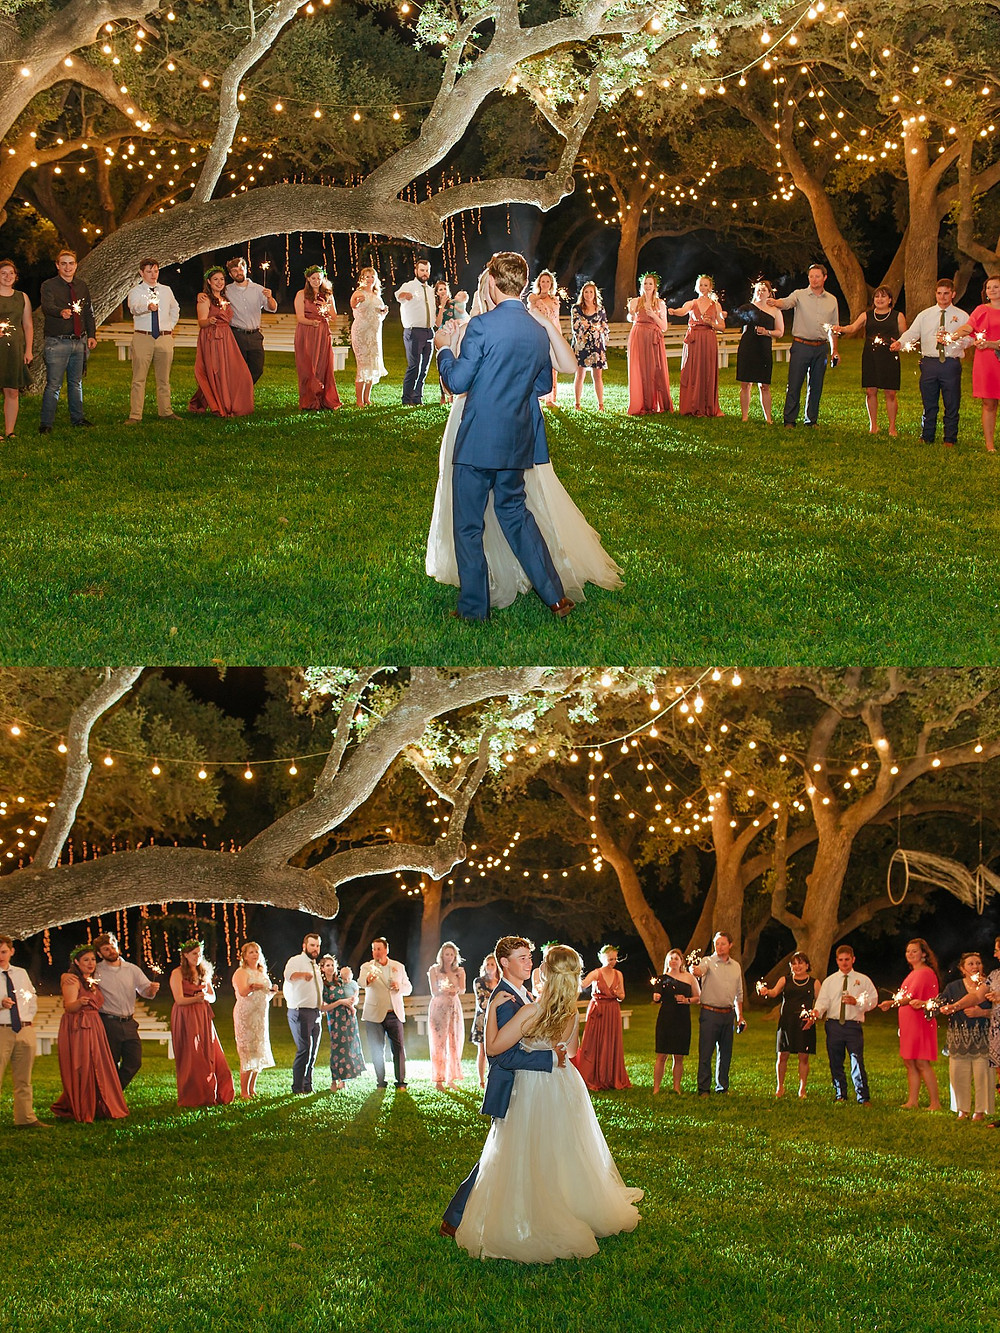 The Oaks at Boerne Wedding | Snap Chic Photography | Boerne and San Antonio Wedding Photographer  | Sparklers for First Dance | Night Portrait